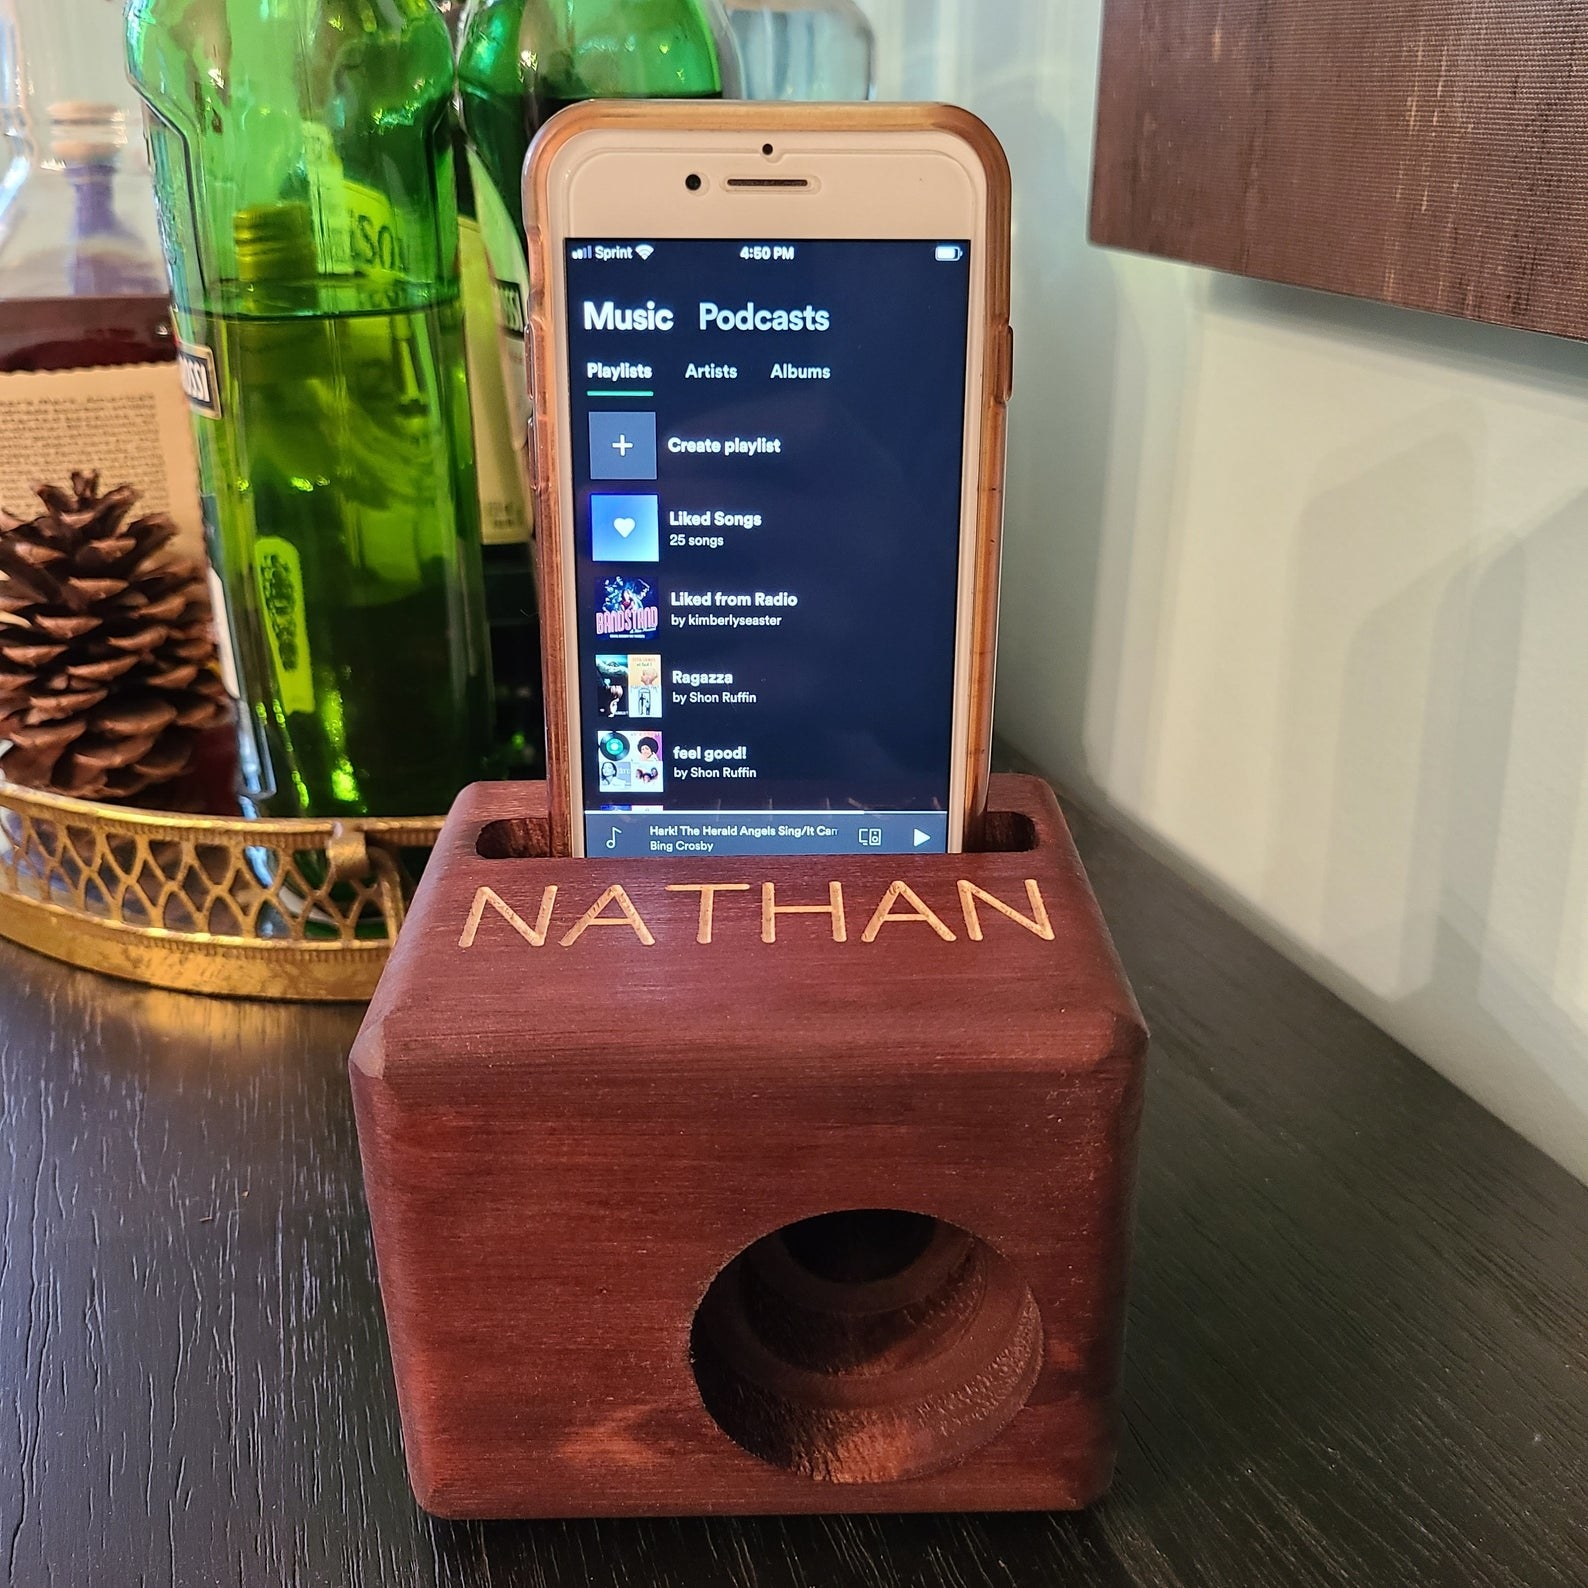 "The phone speaker with the name ""NATHAN"" on it, playing music from Spotify on an iPhone"